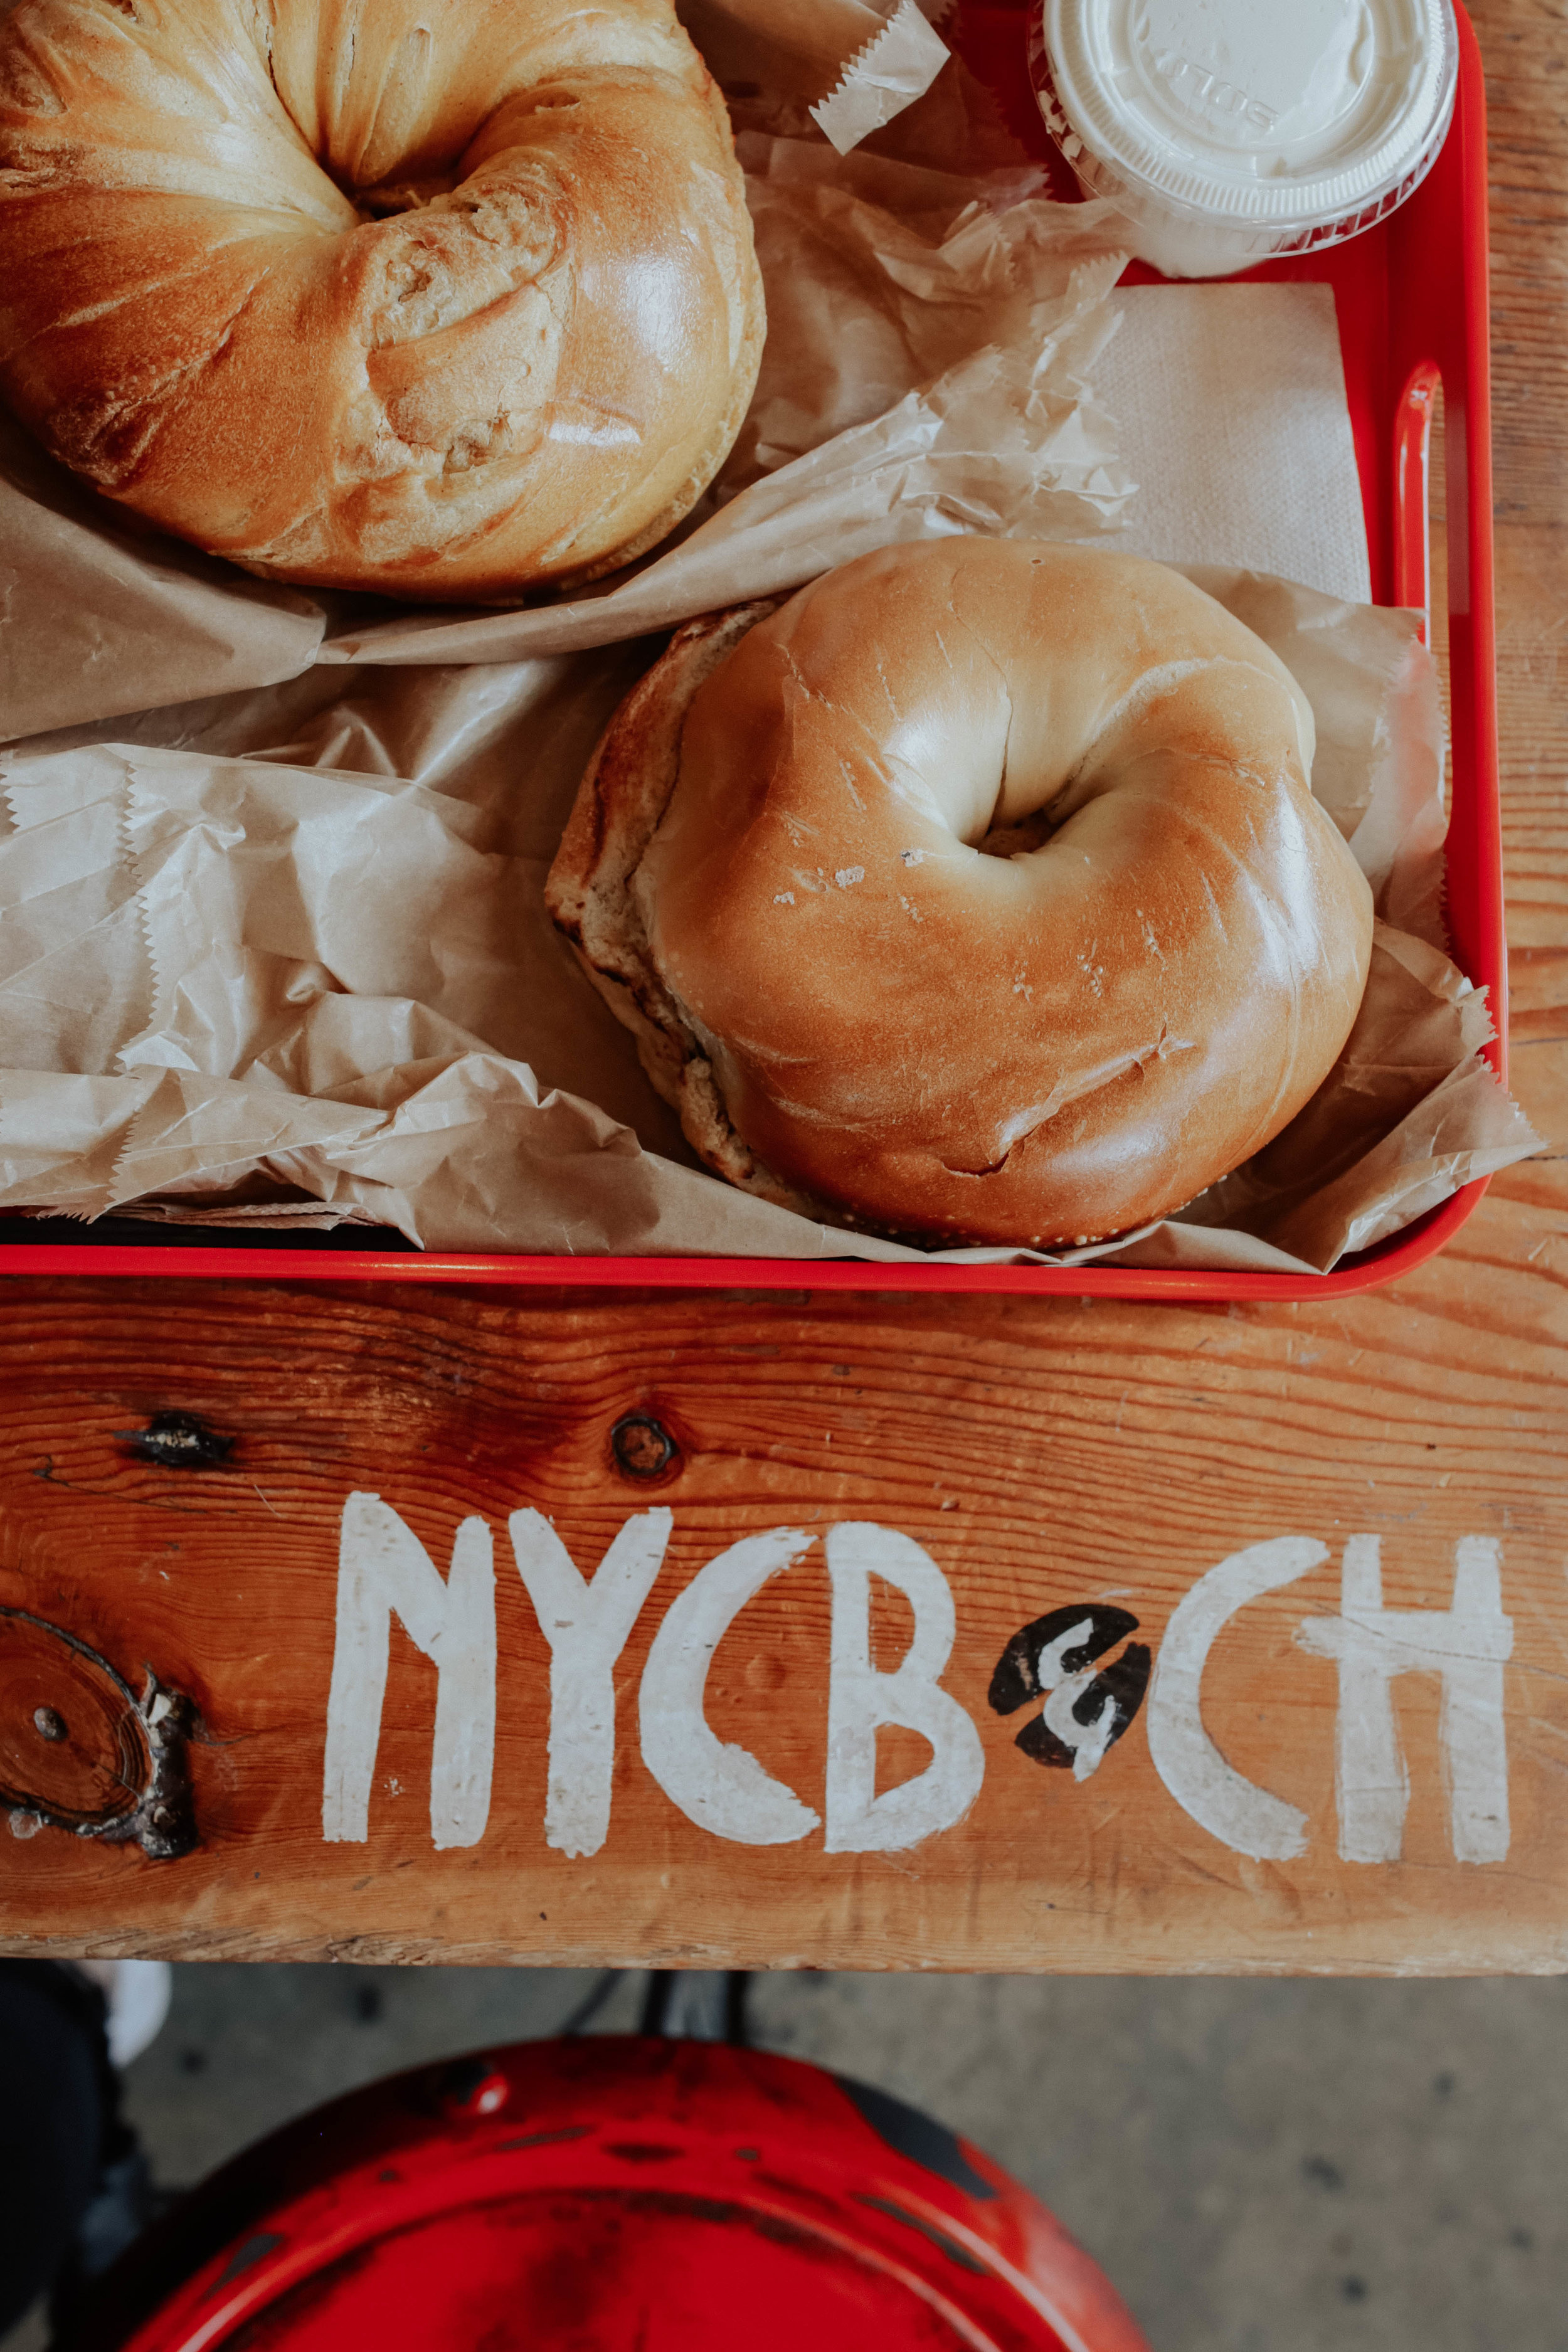 - 6. NYCBCH's french toast bagel. no words. i hate eggs so french toast is iffy for me but mannnn i could probably eat one of these every day i'm in town.. or maybe one for the entire trip because they are GINORMOUS.